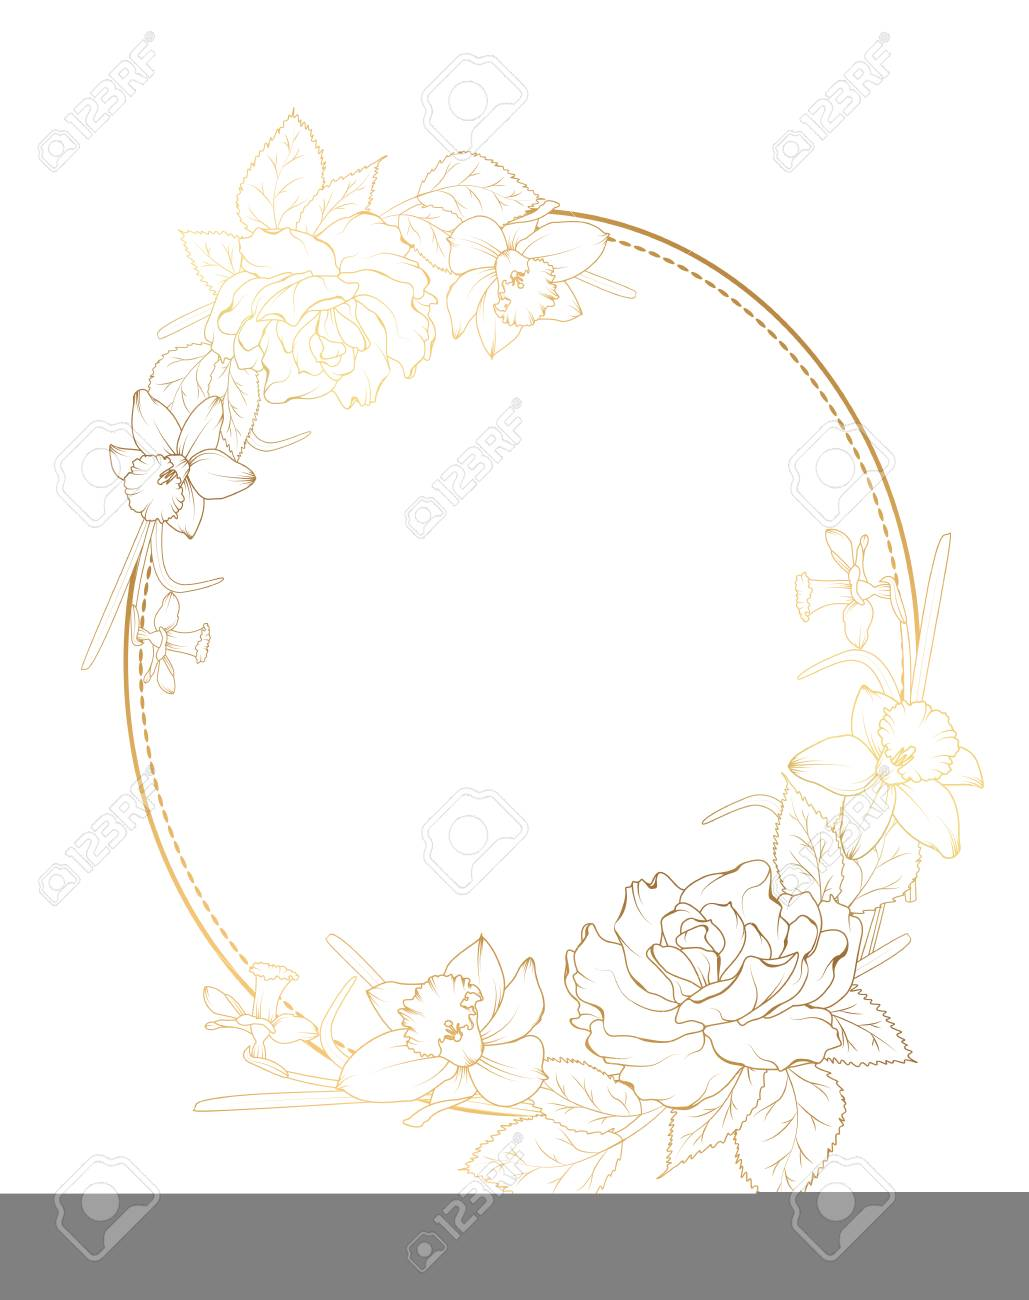 0a19ea99a4a8 Oval border frame decorated with rose peony daffodil narcissus flowers.  Bright shining gold gradient color